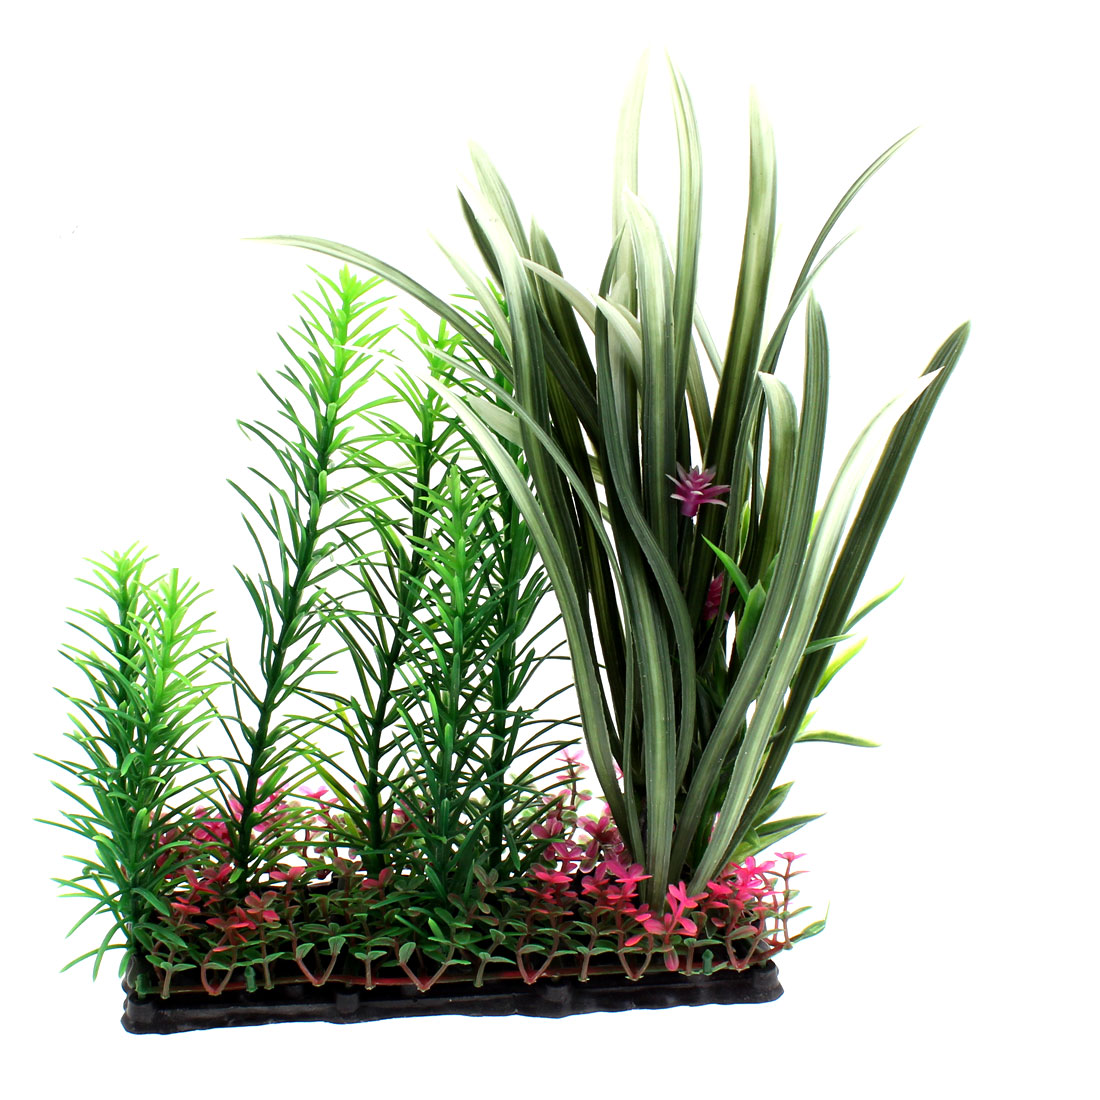 Plastic Manmade Underwater Plant Grass Decor 22 x 16cm for Aquarium Fish Tank